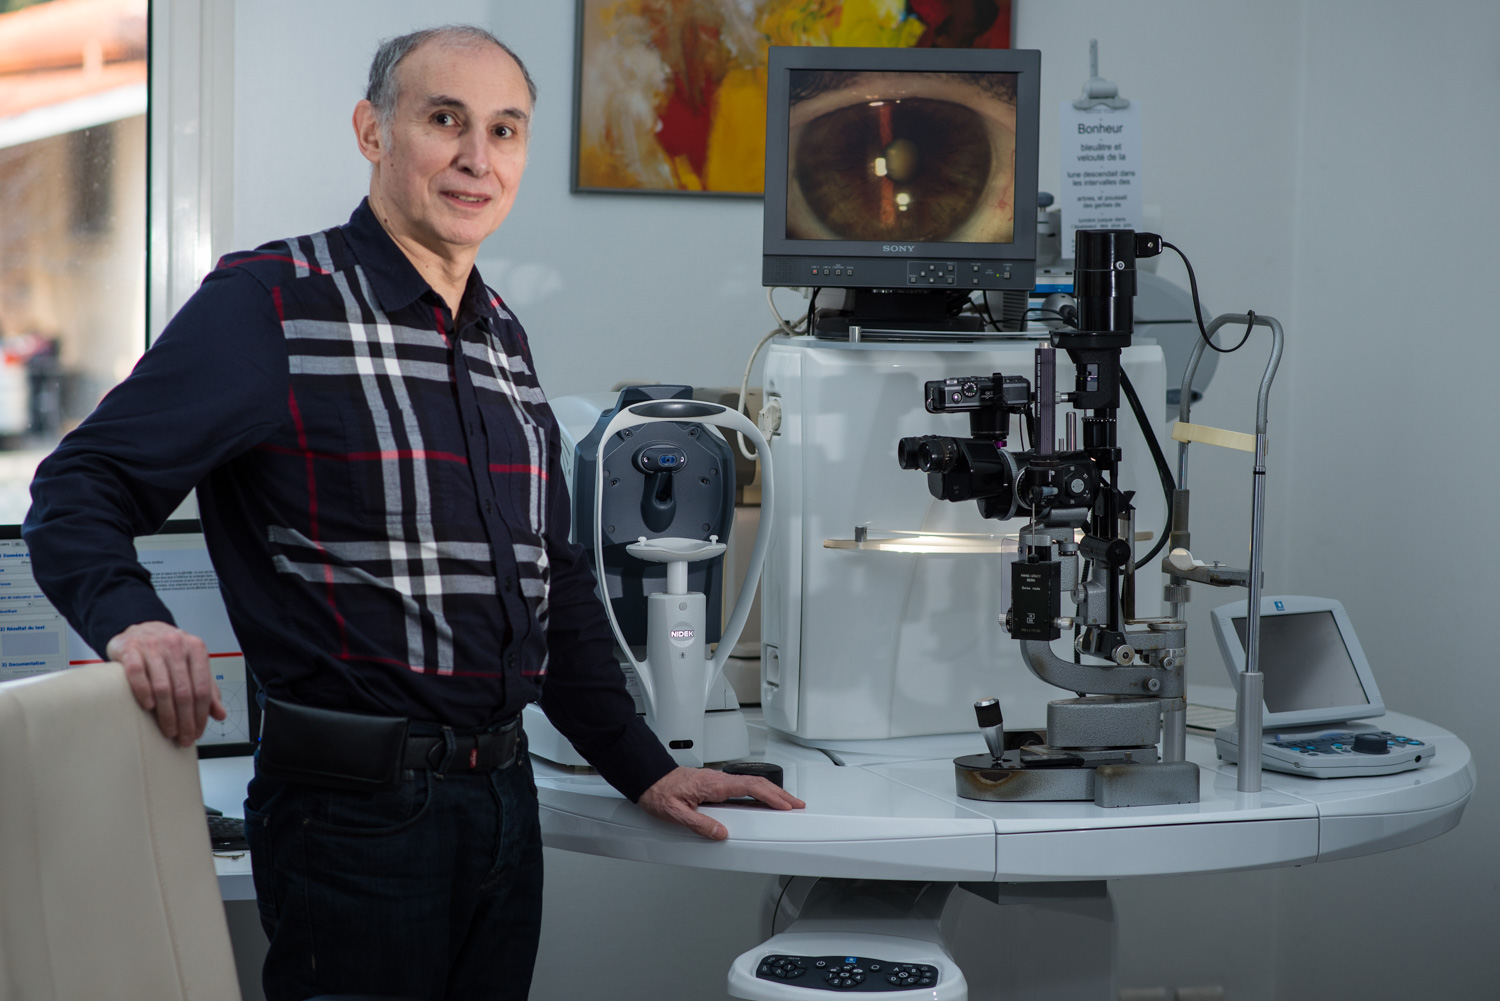 Muratet jean-michel ophtalmologiste eye-doctor ophthalmologist pamiers france